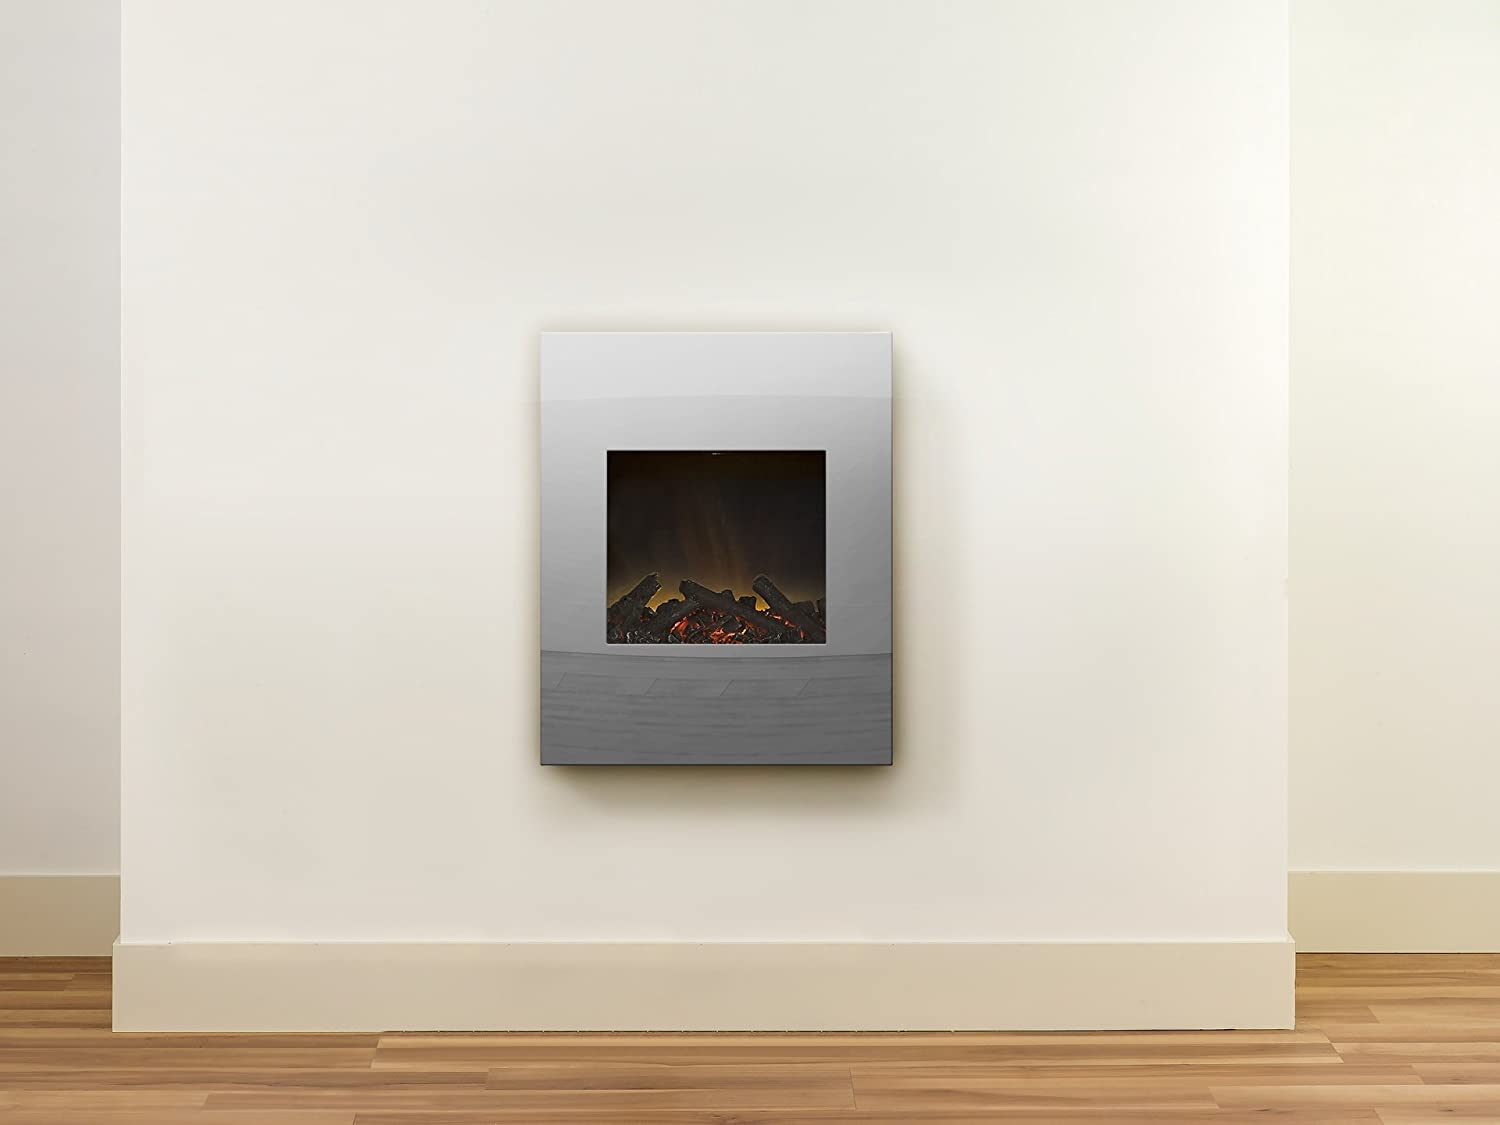 Alexis mirror wall hung fire gallery home wall decoration ideas adam alexis wall mounted electric fire with mirrored fascia 18 adam alexis wall mounted electric fire amipublicfo Images